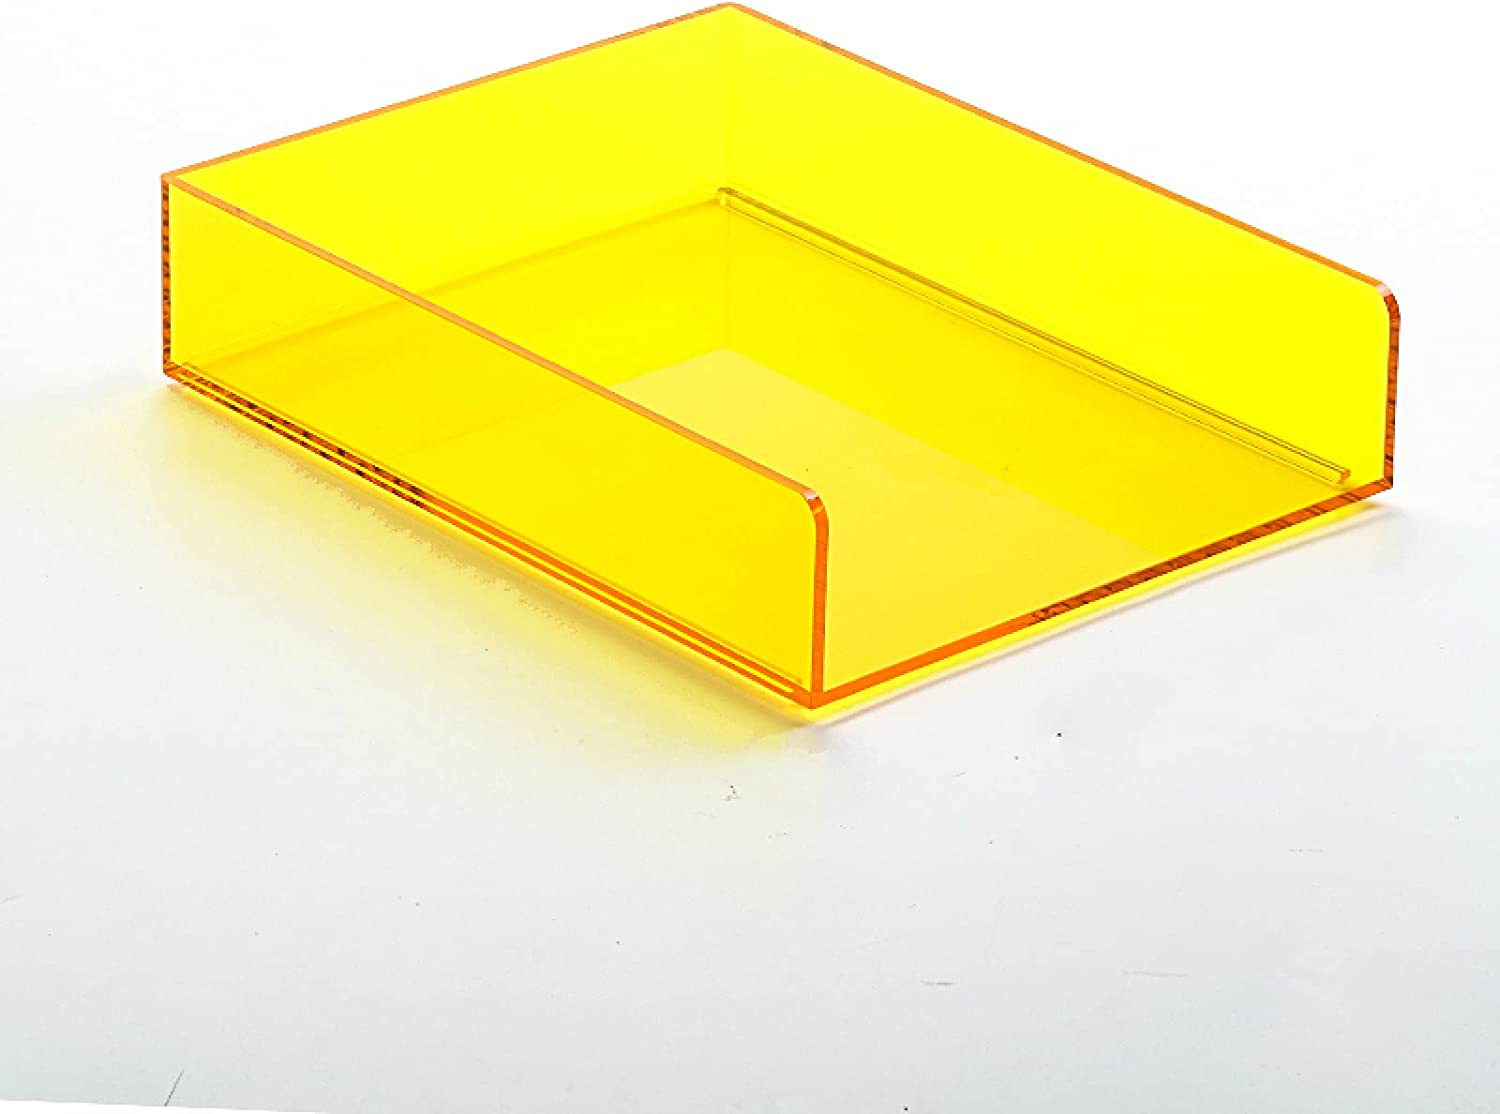 Outlet ☆ Free Shipping MEYYY Acrylic A4 Raleigh Mall Letter Trays Stackable Tidy File Ho Office Desk